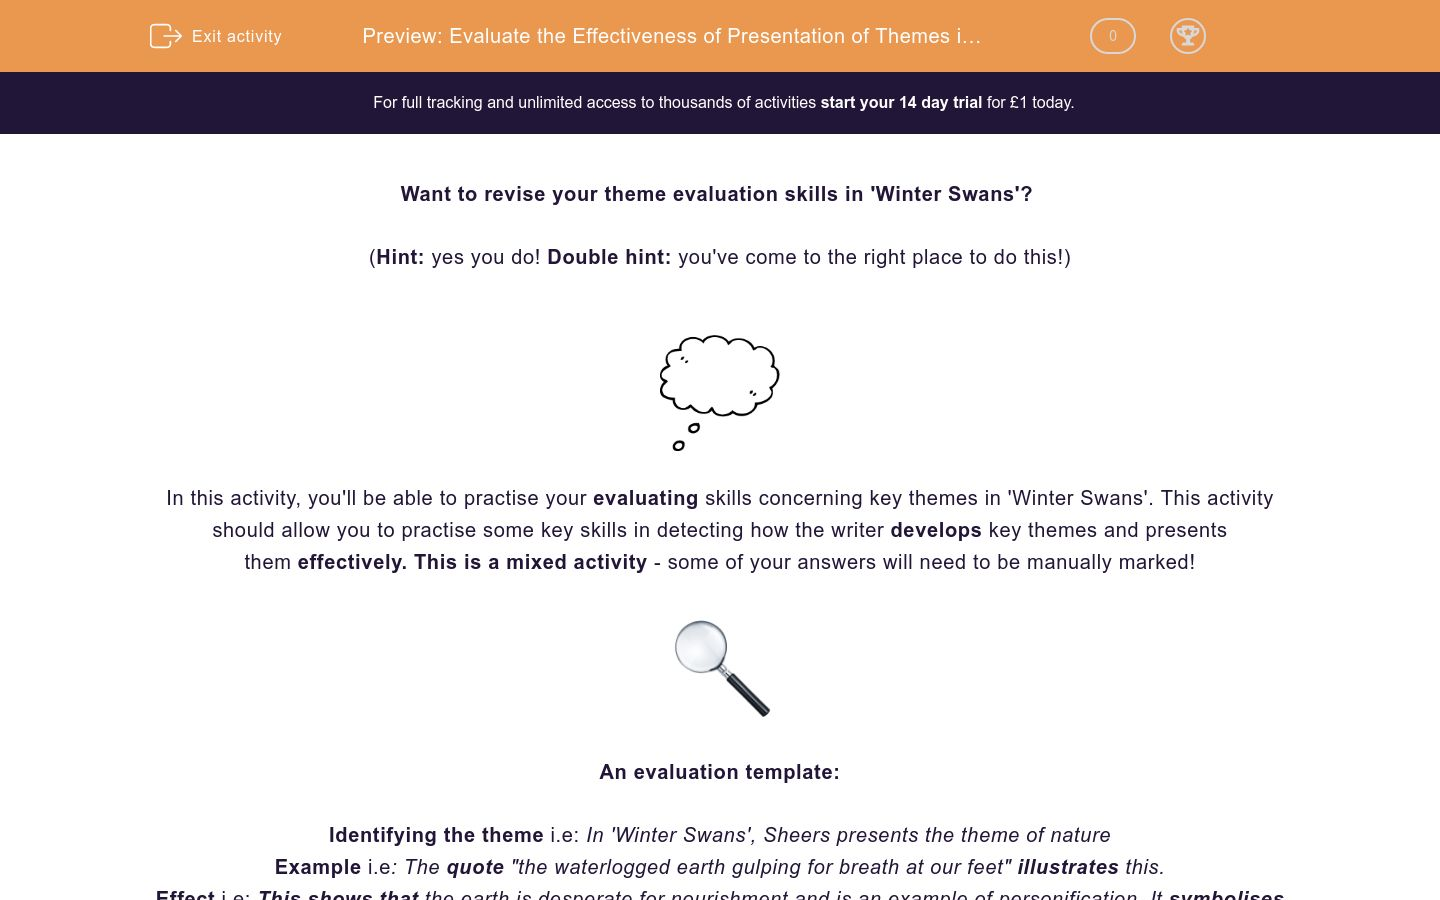 'Evaluate the Effectiveness of Presentation of Themes in 'Winter Swans'' worksheet